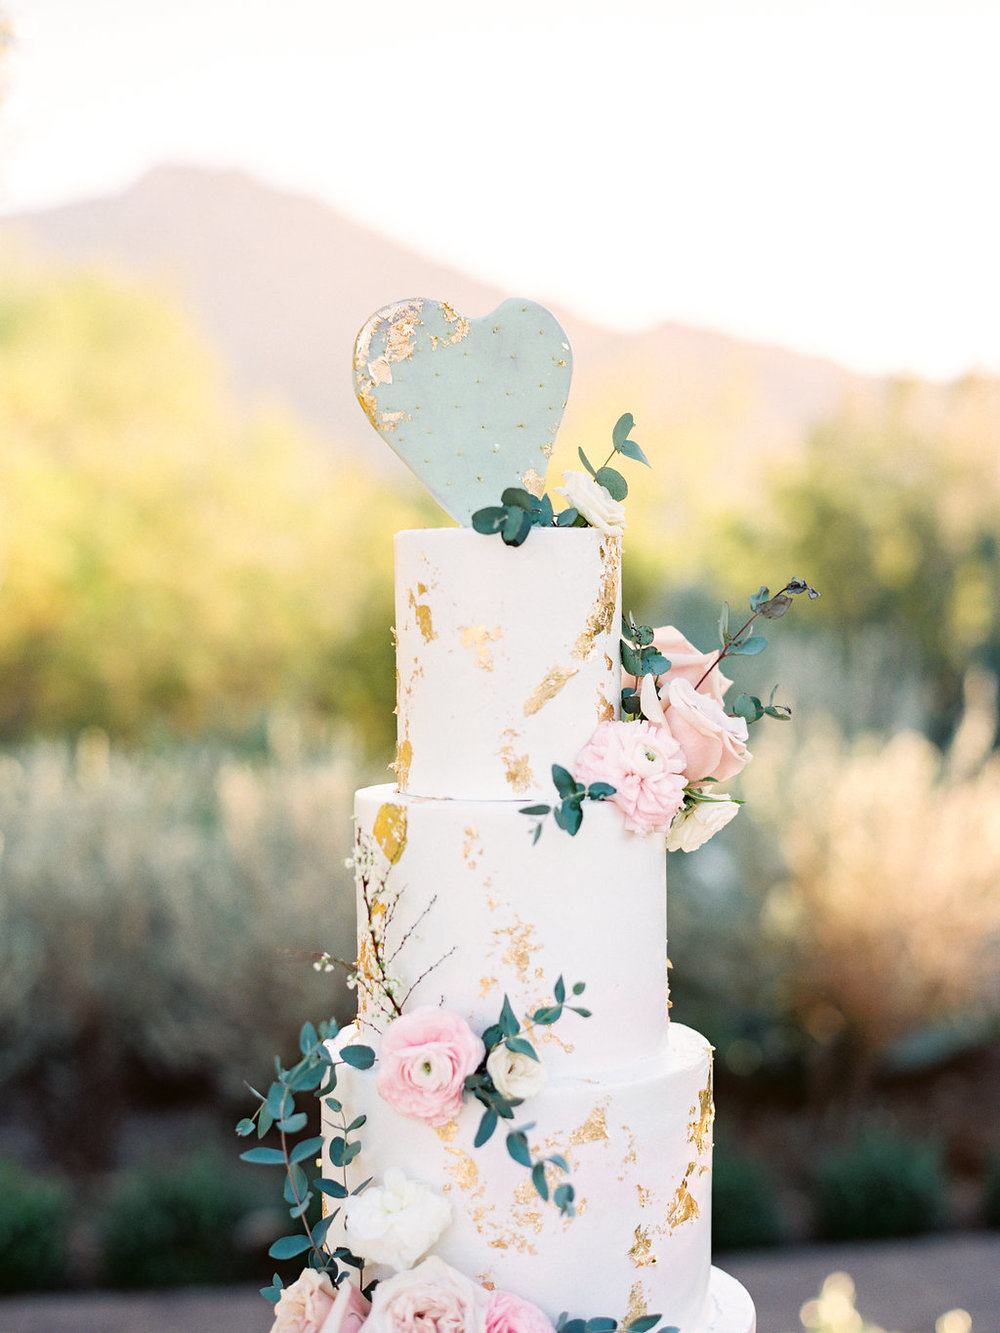 Blush and gold flaked wedding cake.jpg